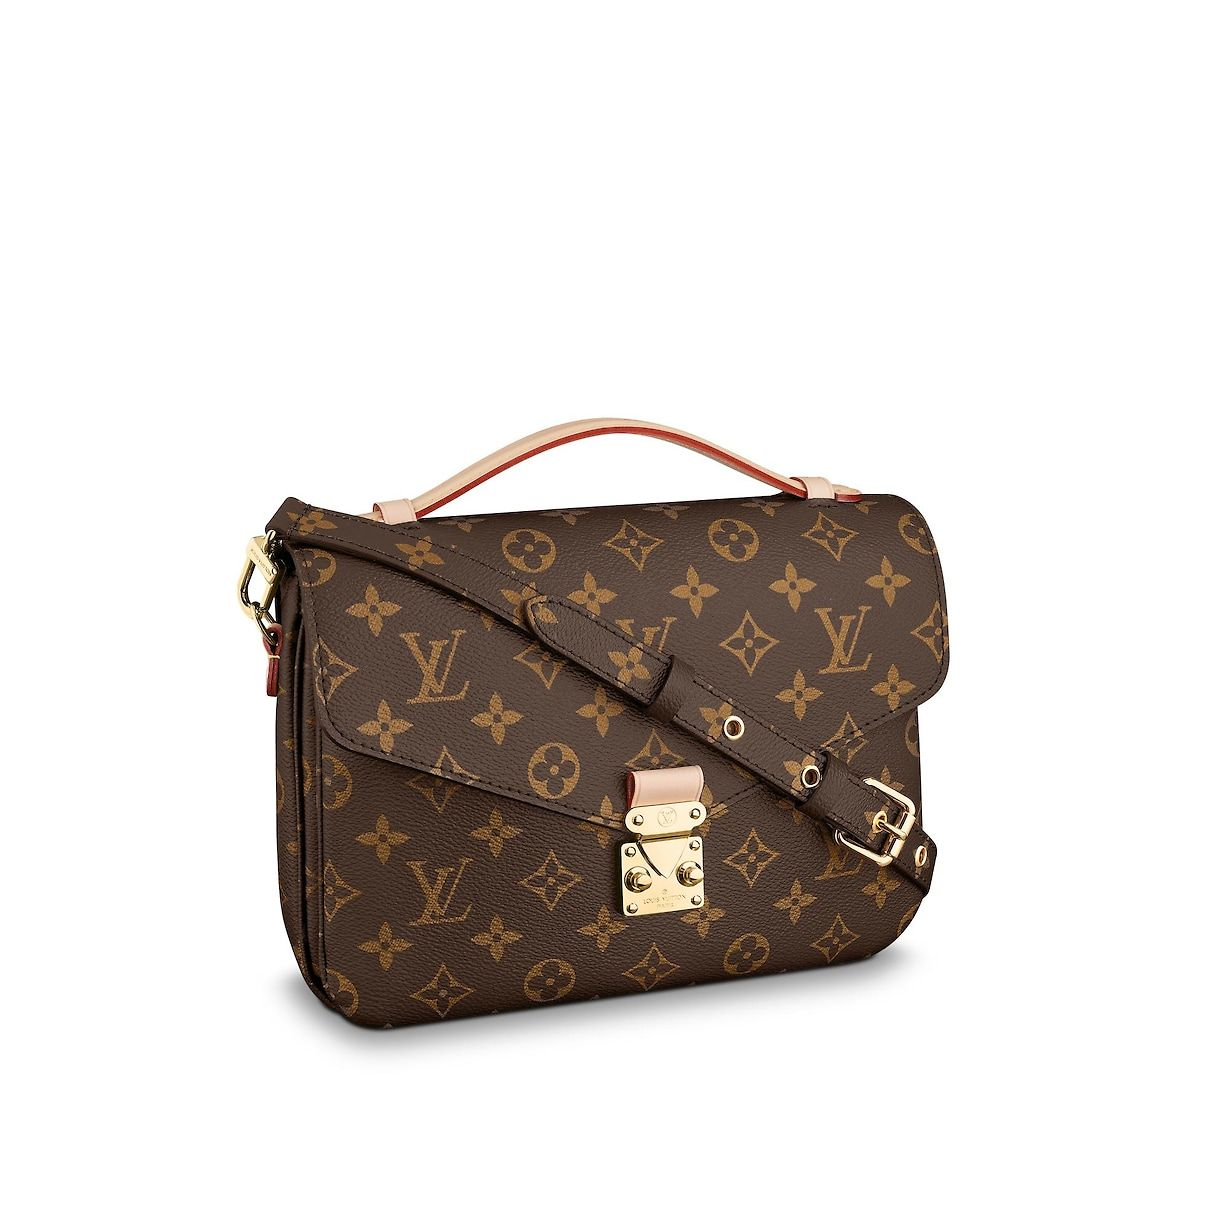 Pin On Fav Bags And Shoes